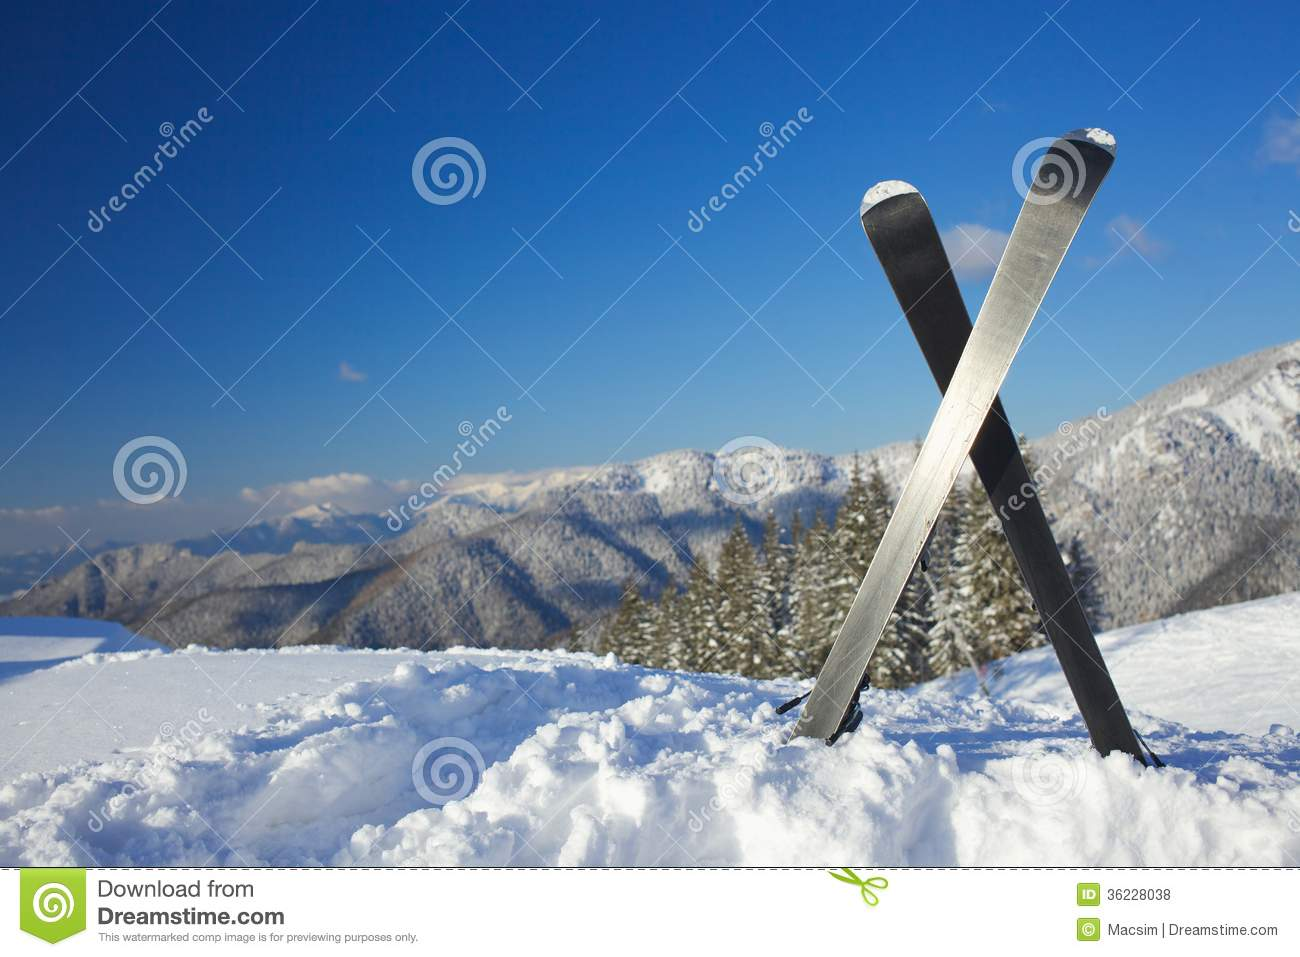 Skis in mountains royalty free stock photos image 36228038 for Vacation in the snow